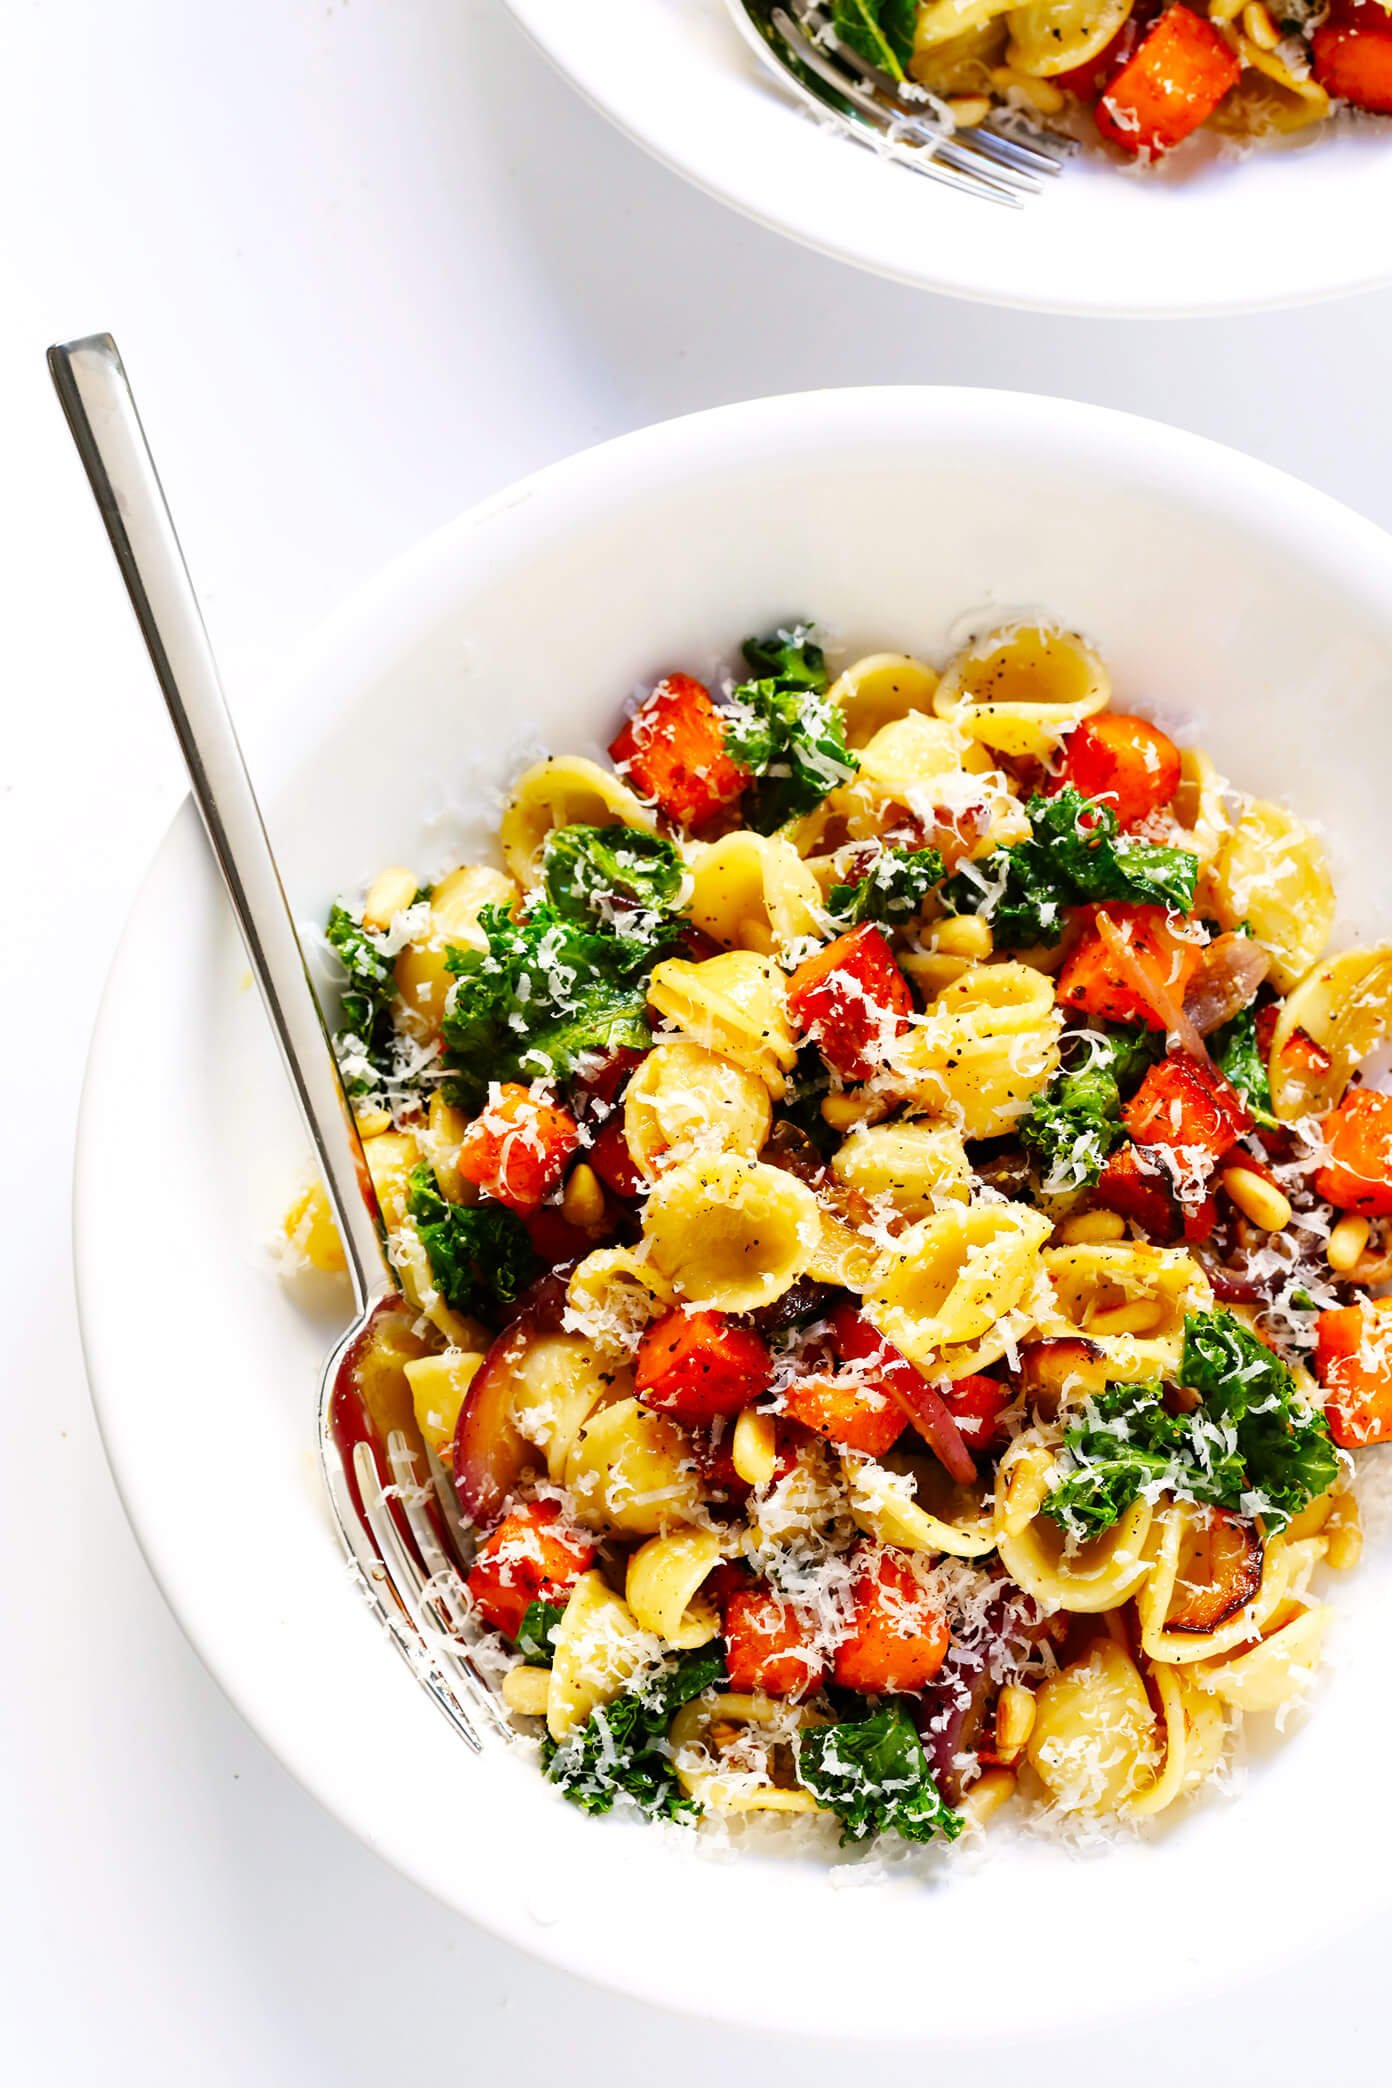 Pasta with Caramelized Sweet Potatoes, Kale and Parmesan